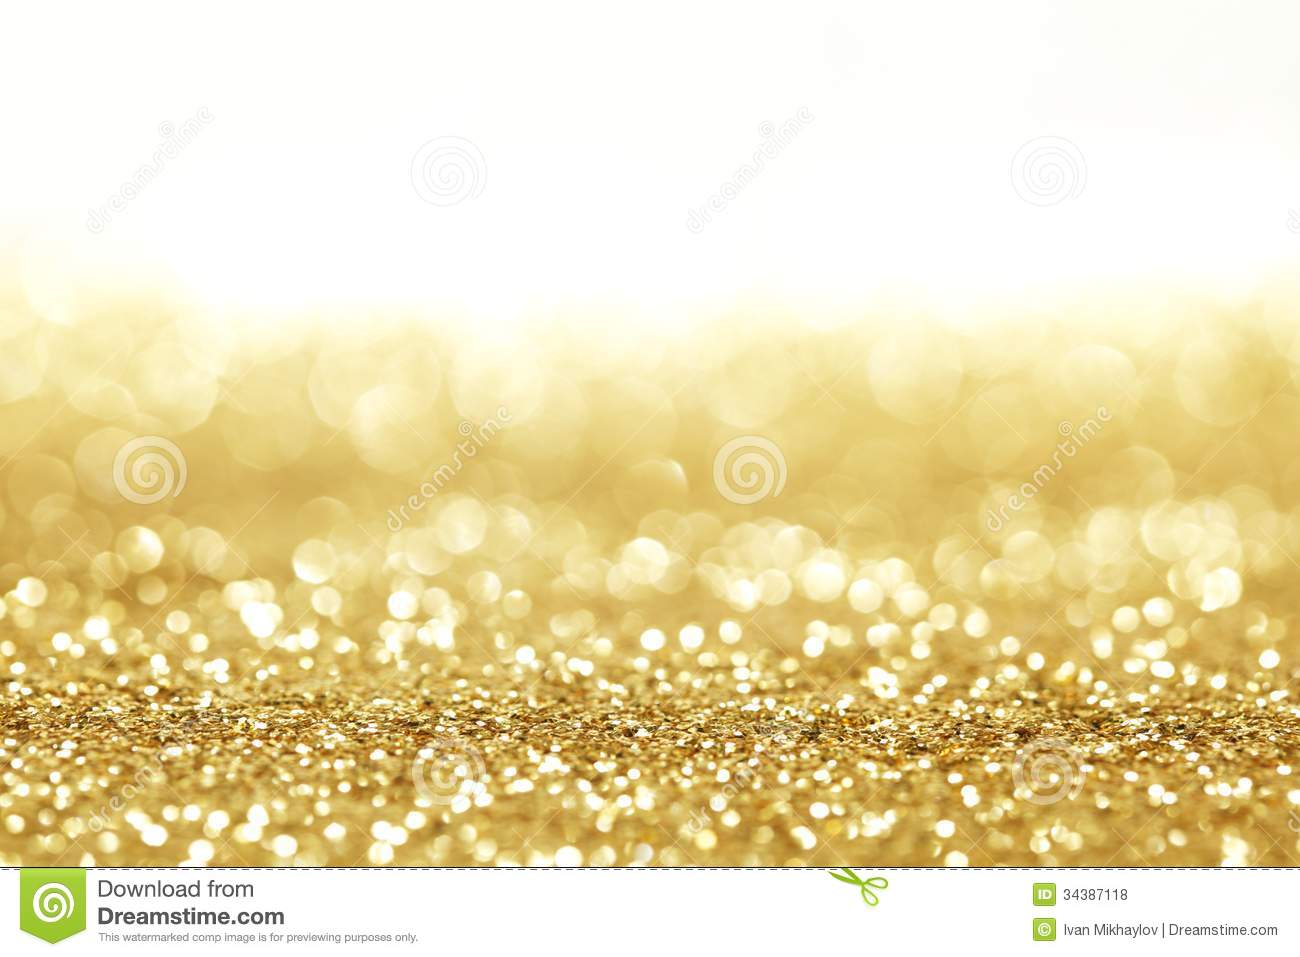 Golden glitter background stock photo. Image of festive - 34387118 b310b1f7310e